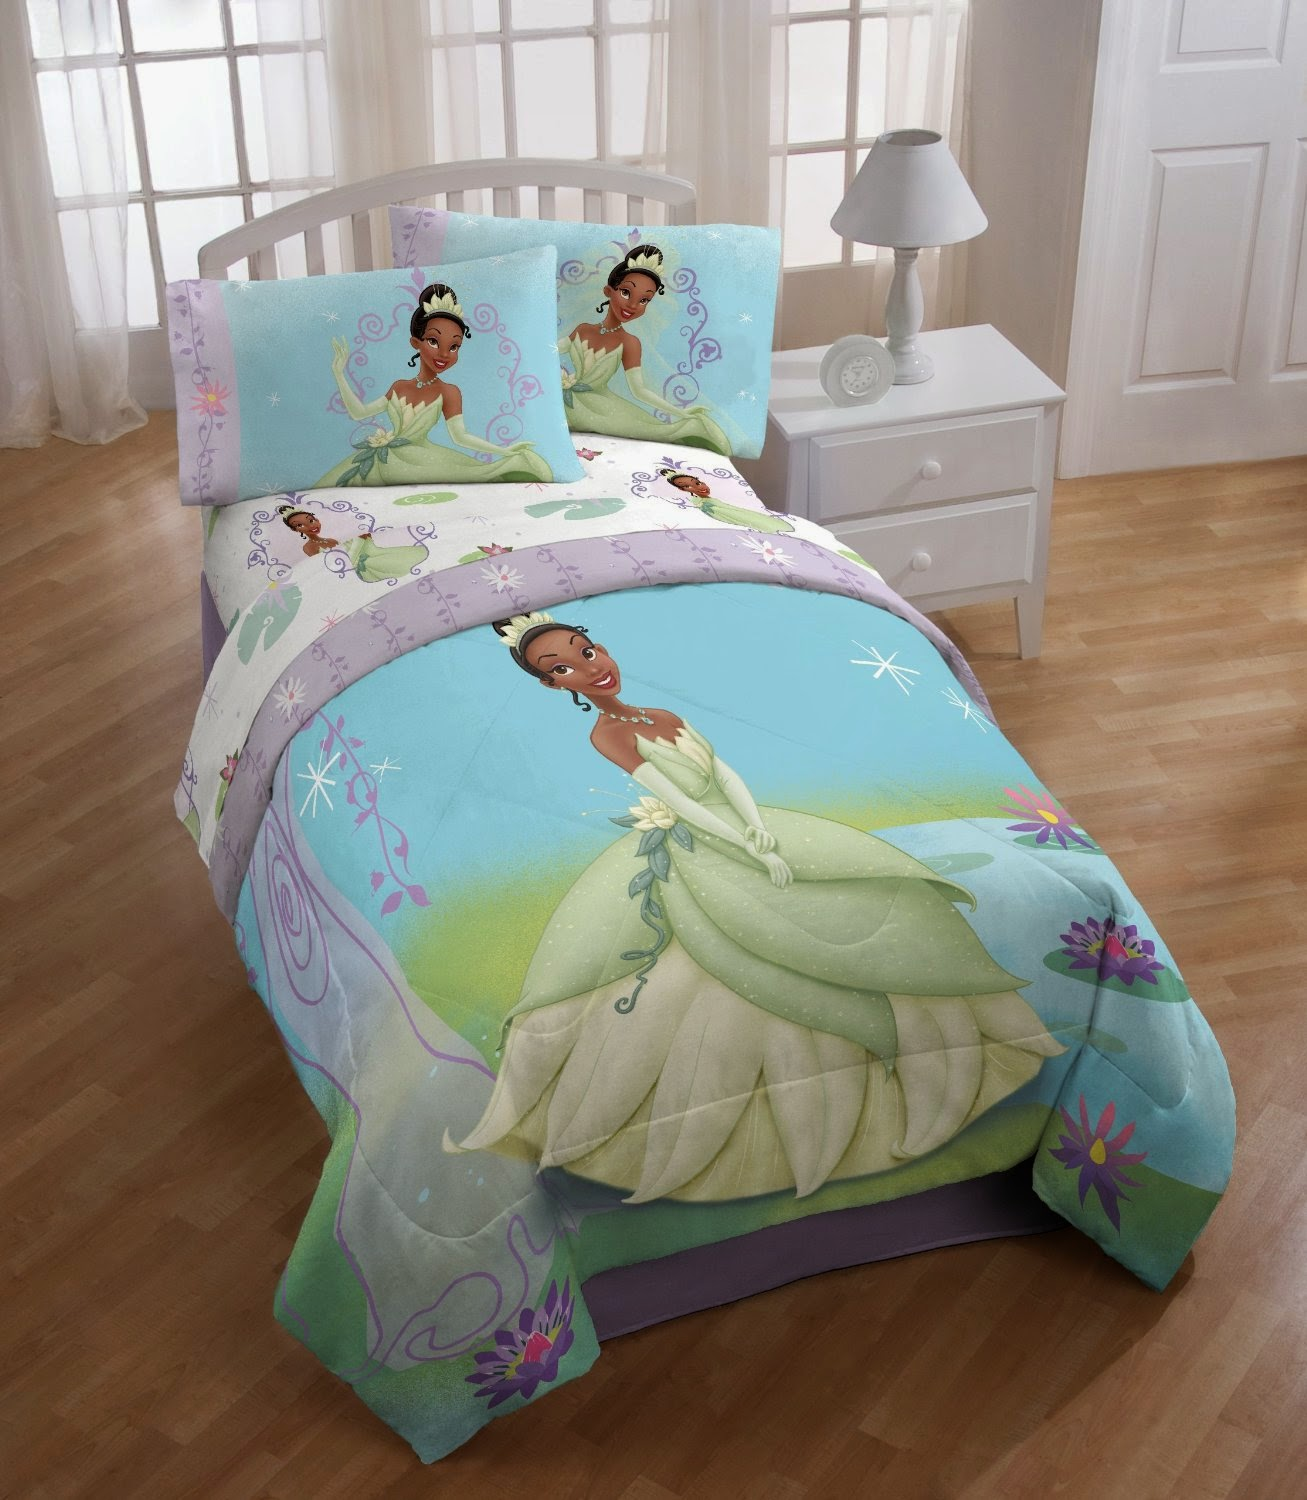 Bedroom decor ideas and designs how to decorate a disney for Frog bedroom ideas